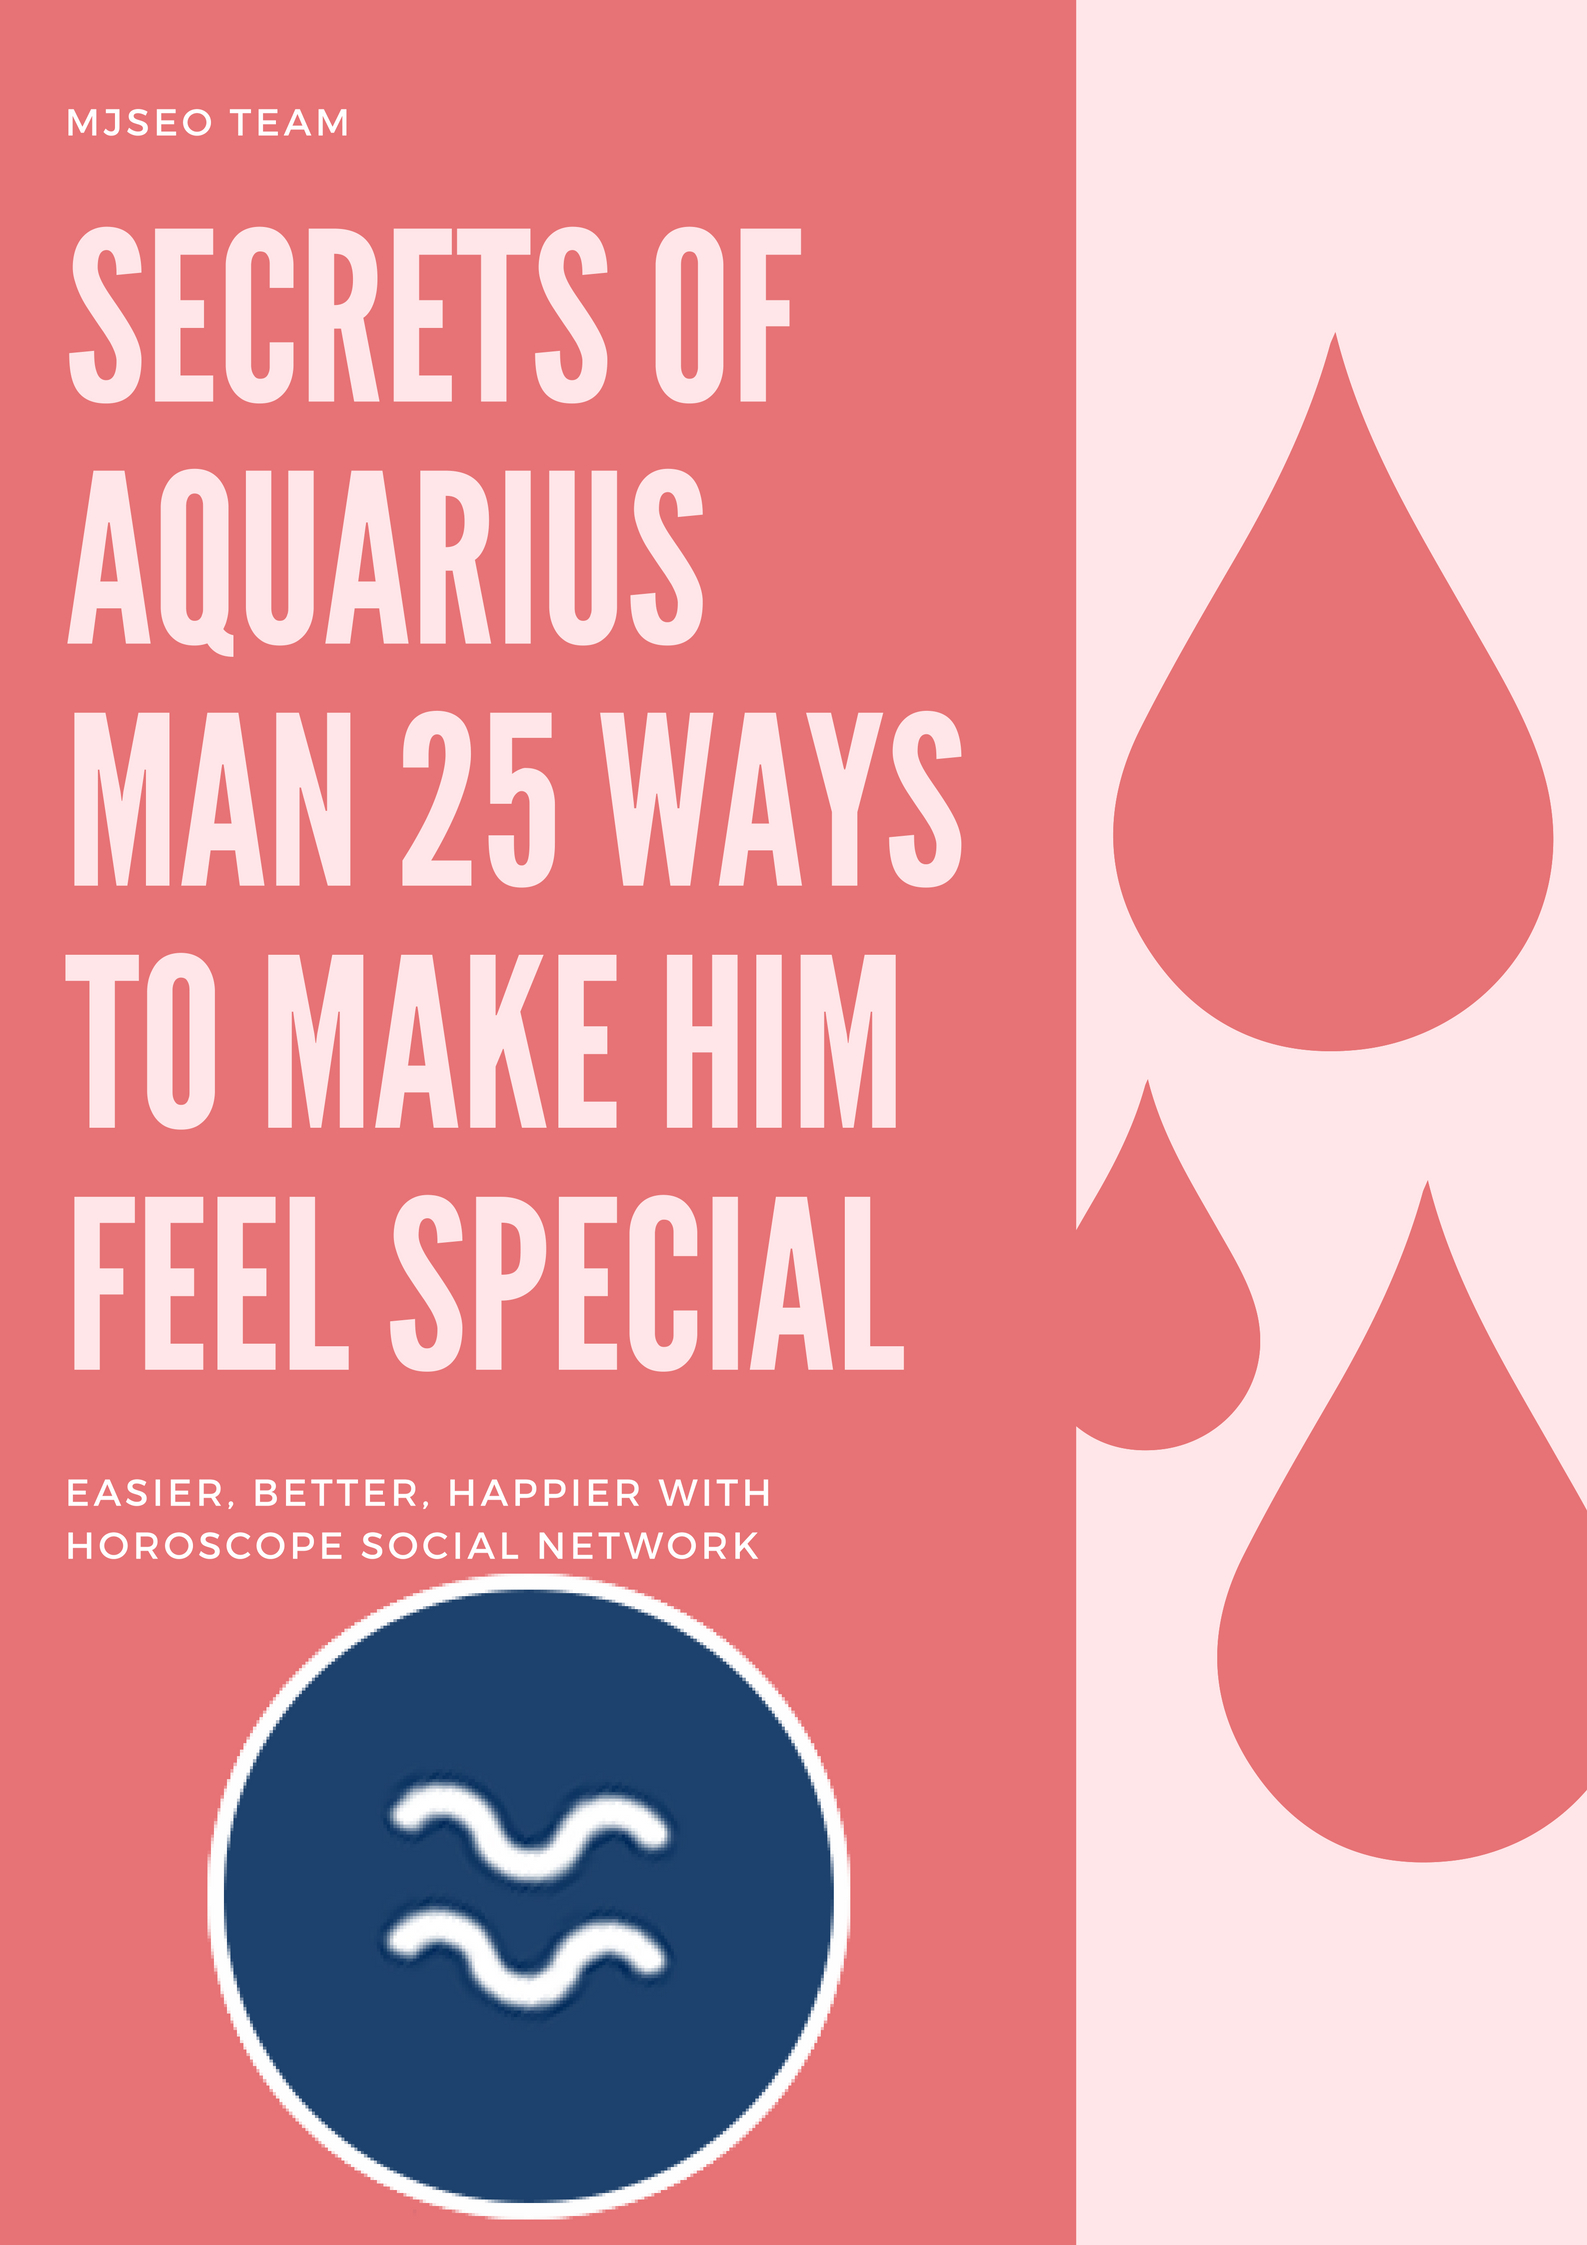 Secrets-Of-Aquarius-Man-25-Ways-To-Make-Him-Feel-Special